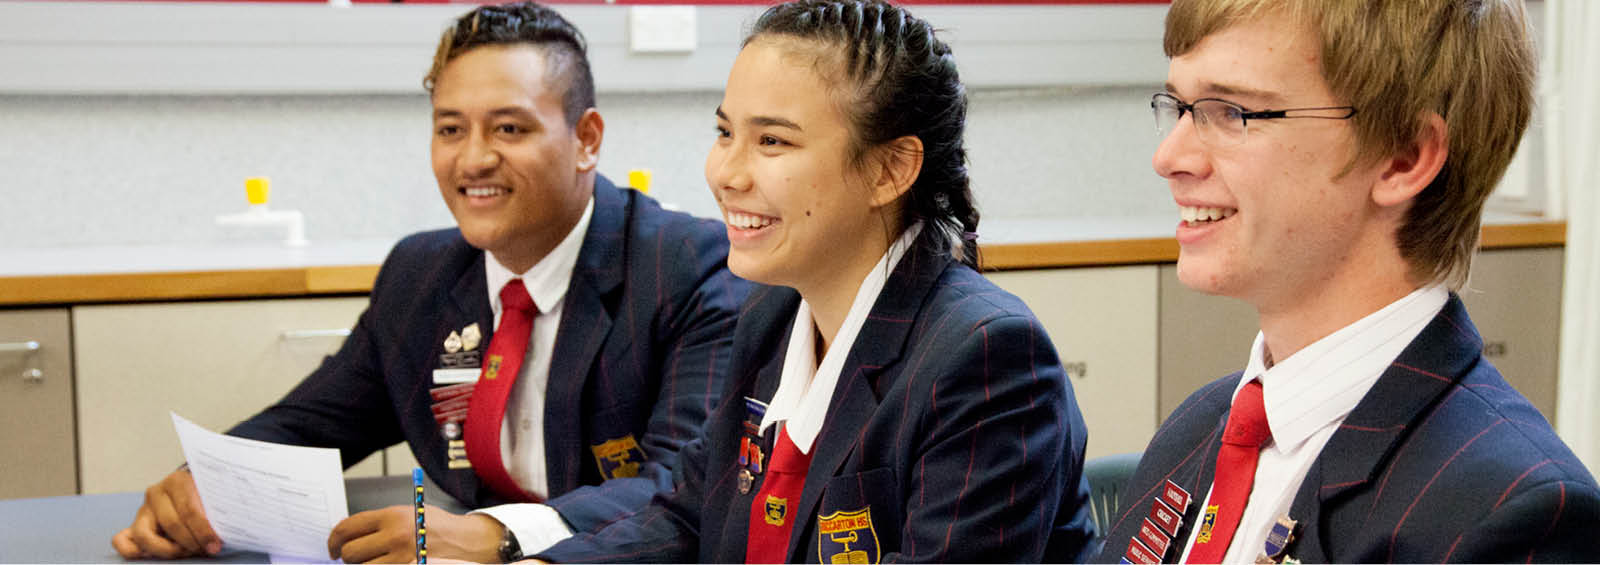 Riccarton High School - Excellence